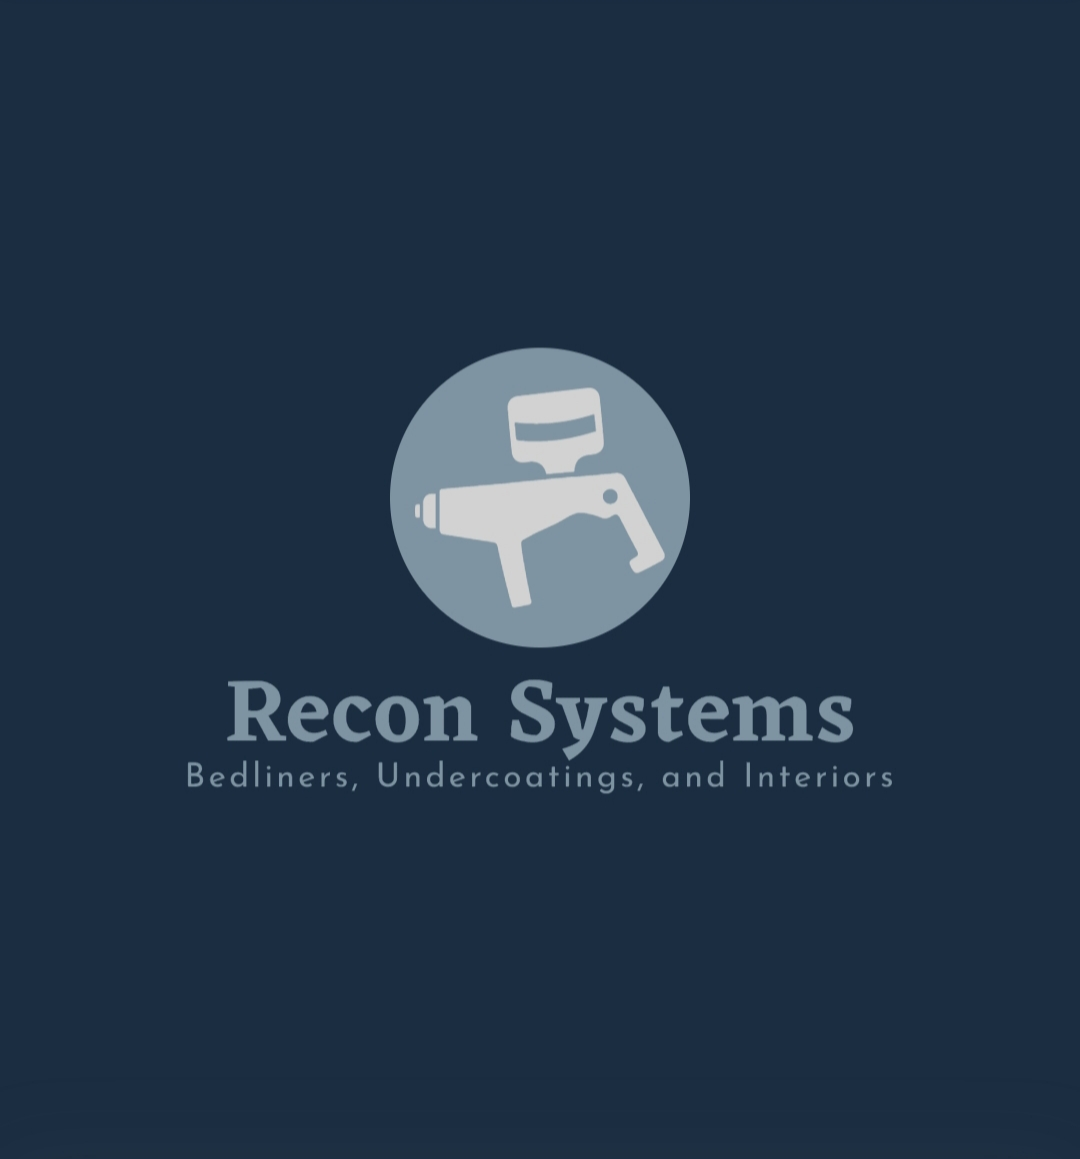 Recon Systems